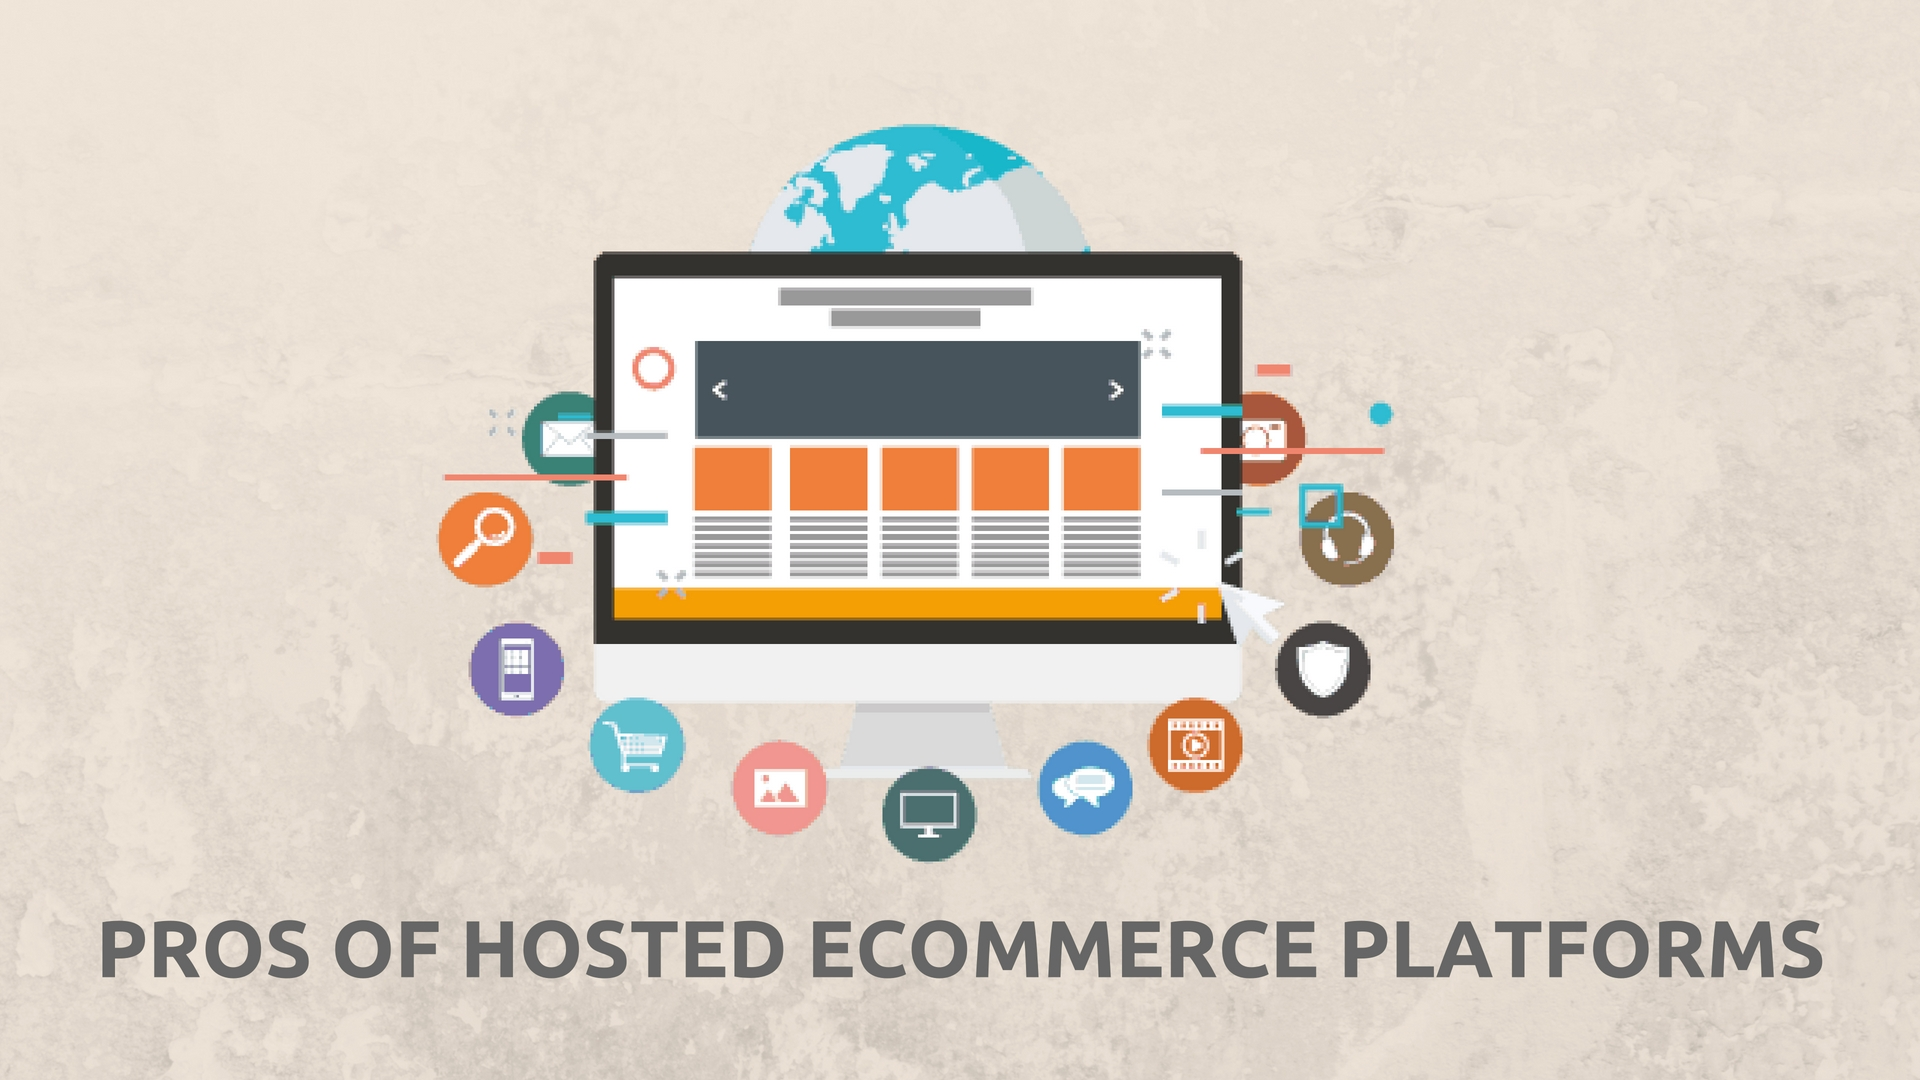 Pros of hosted eCommerce platforms